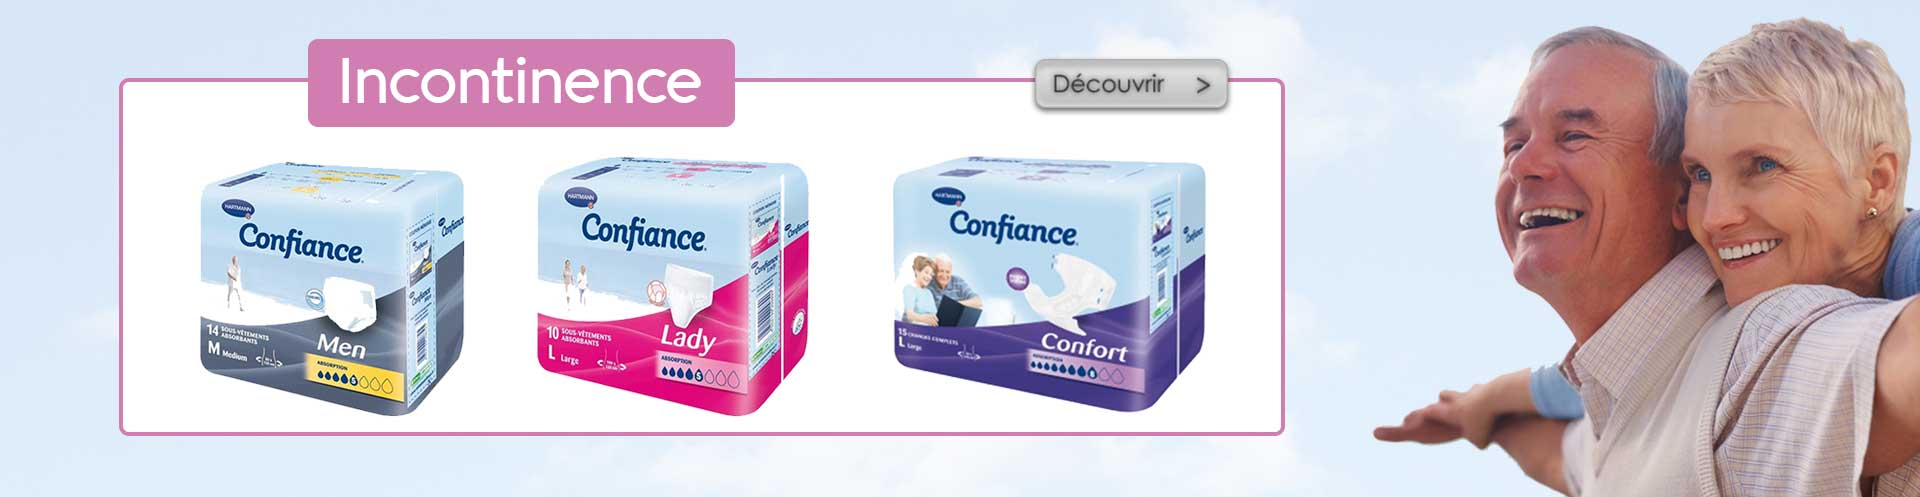 Incontinence2